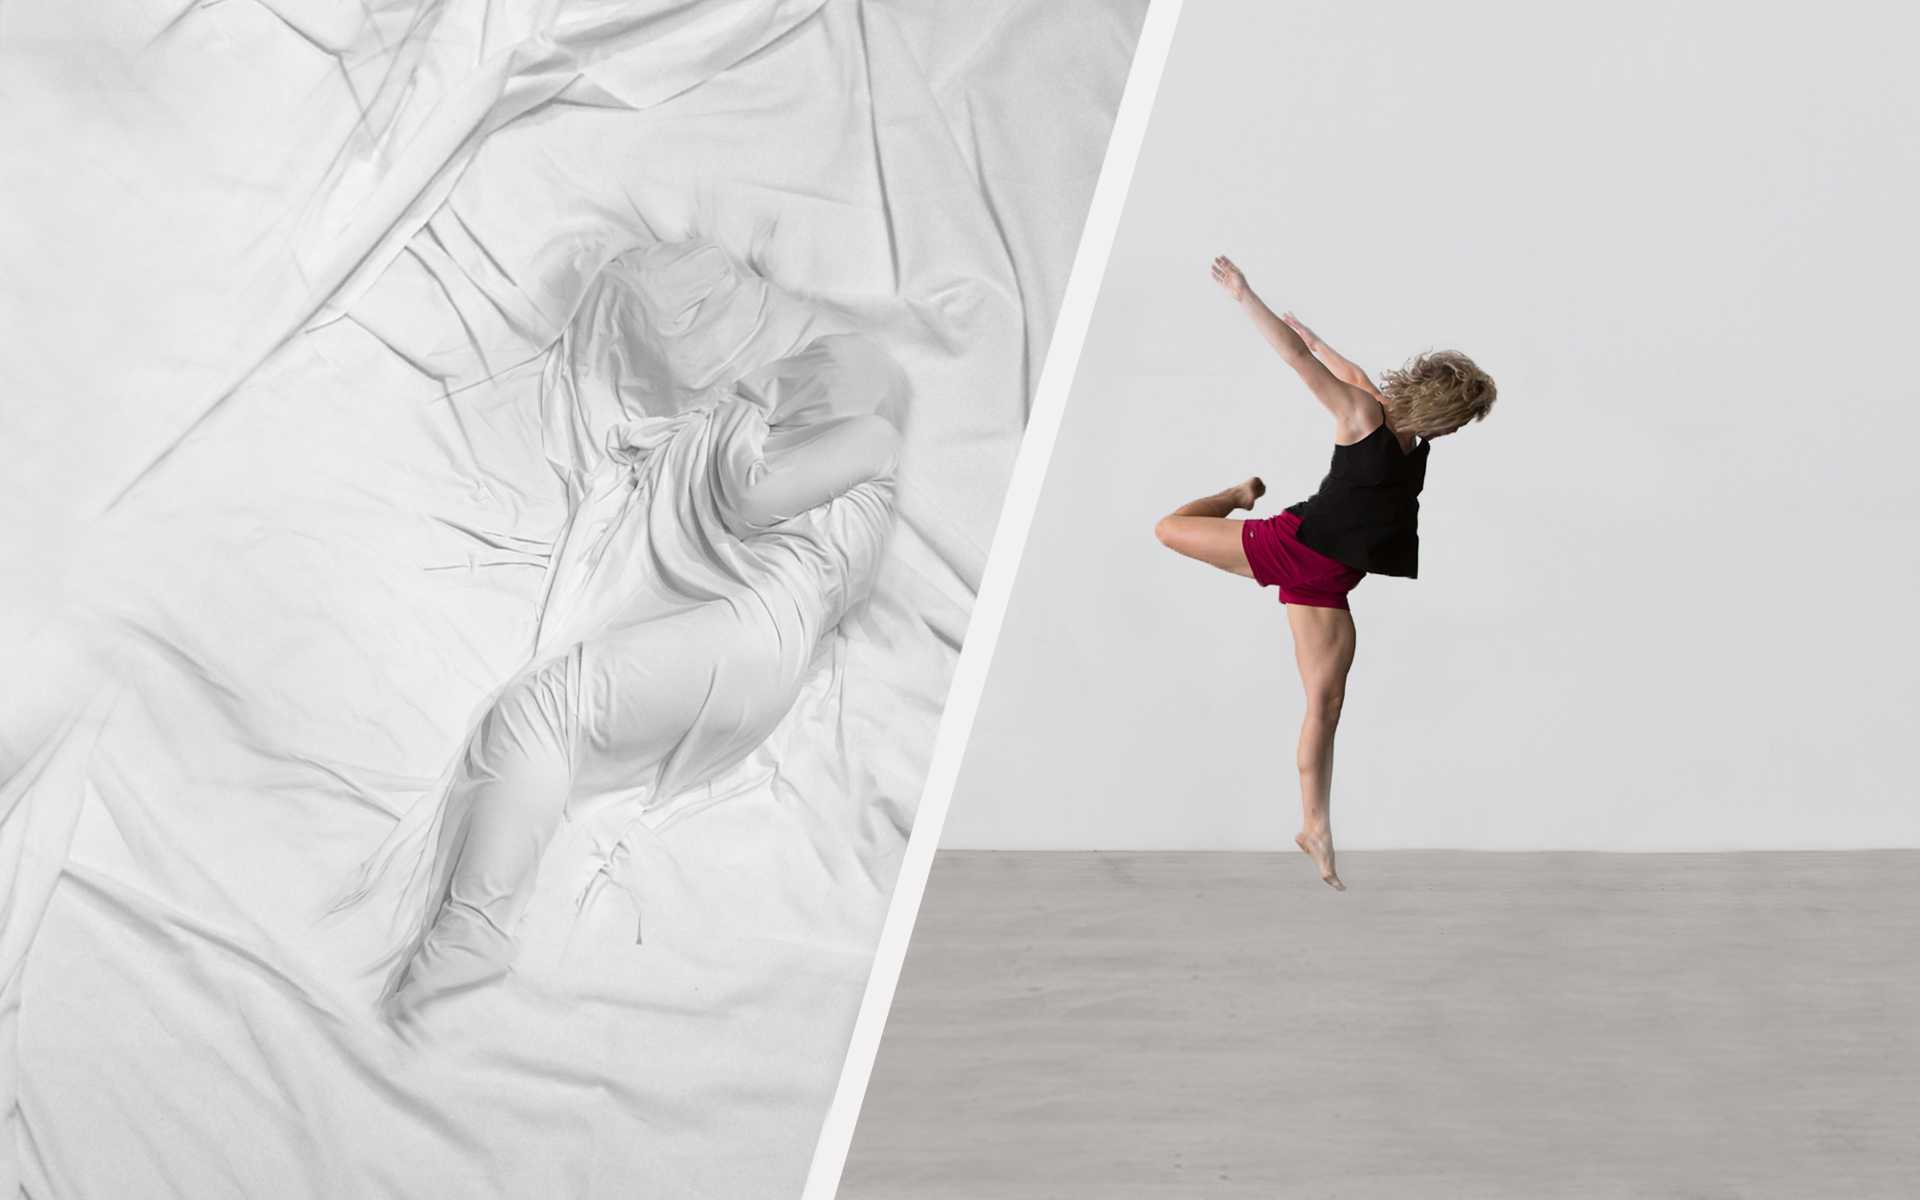 Two images next to each other. one of a women jumping and one with a body wrapped in bed sheets